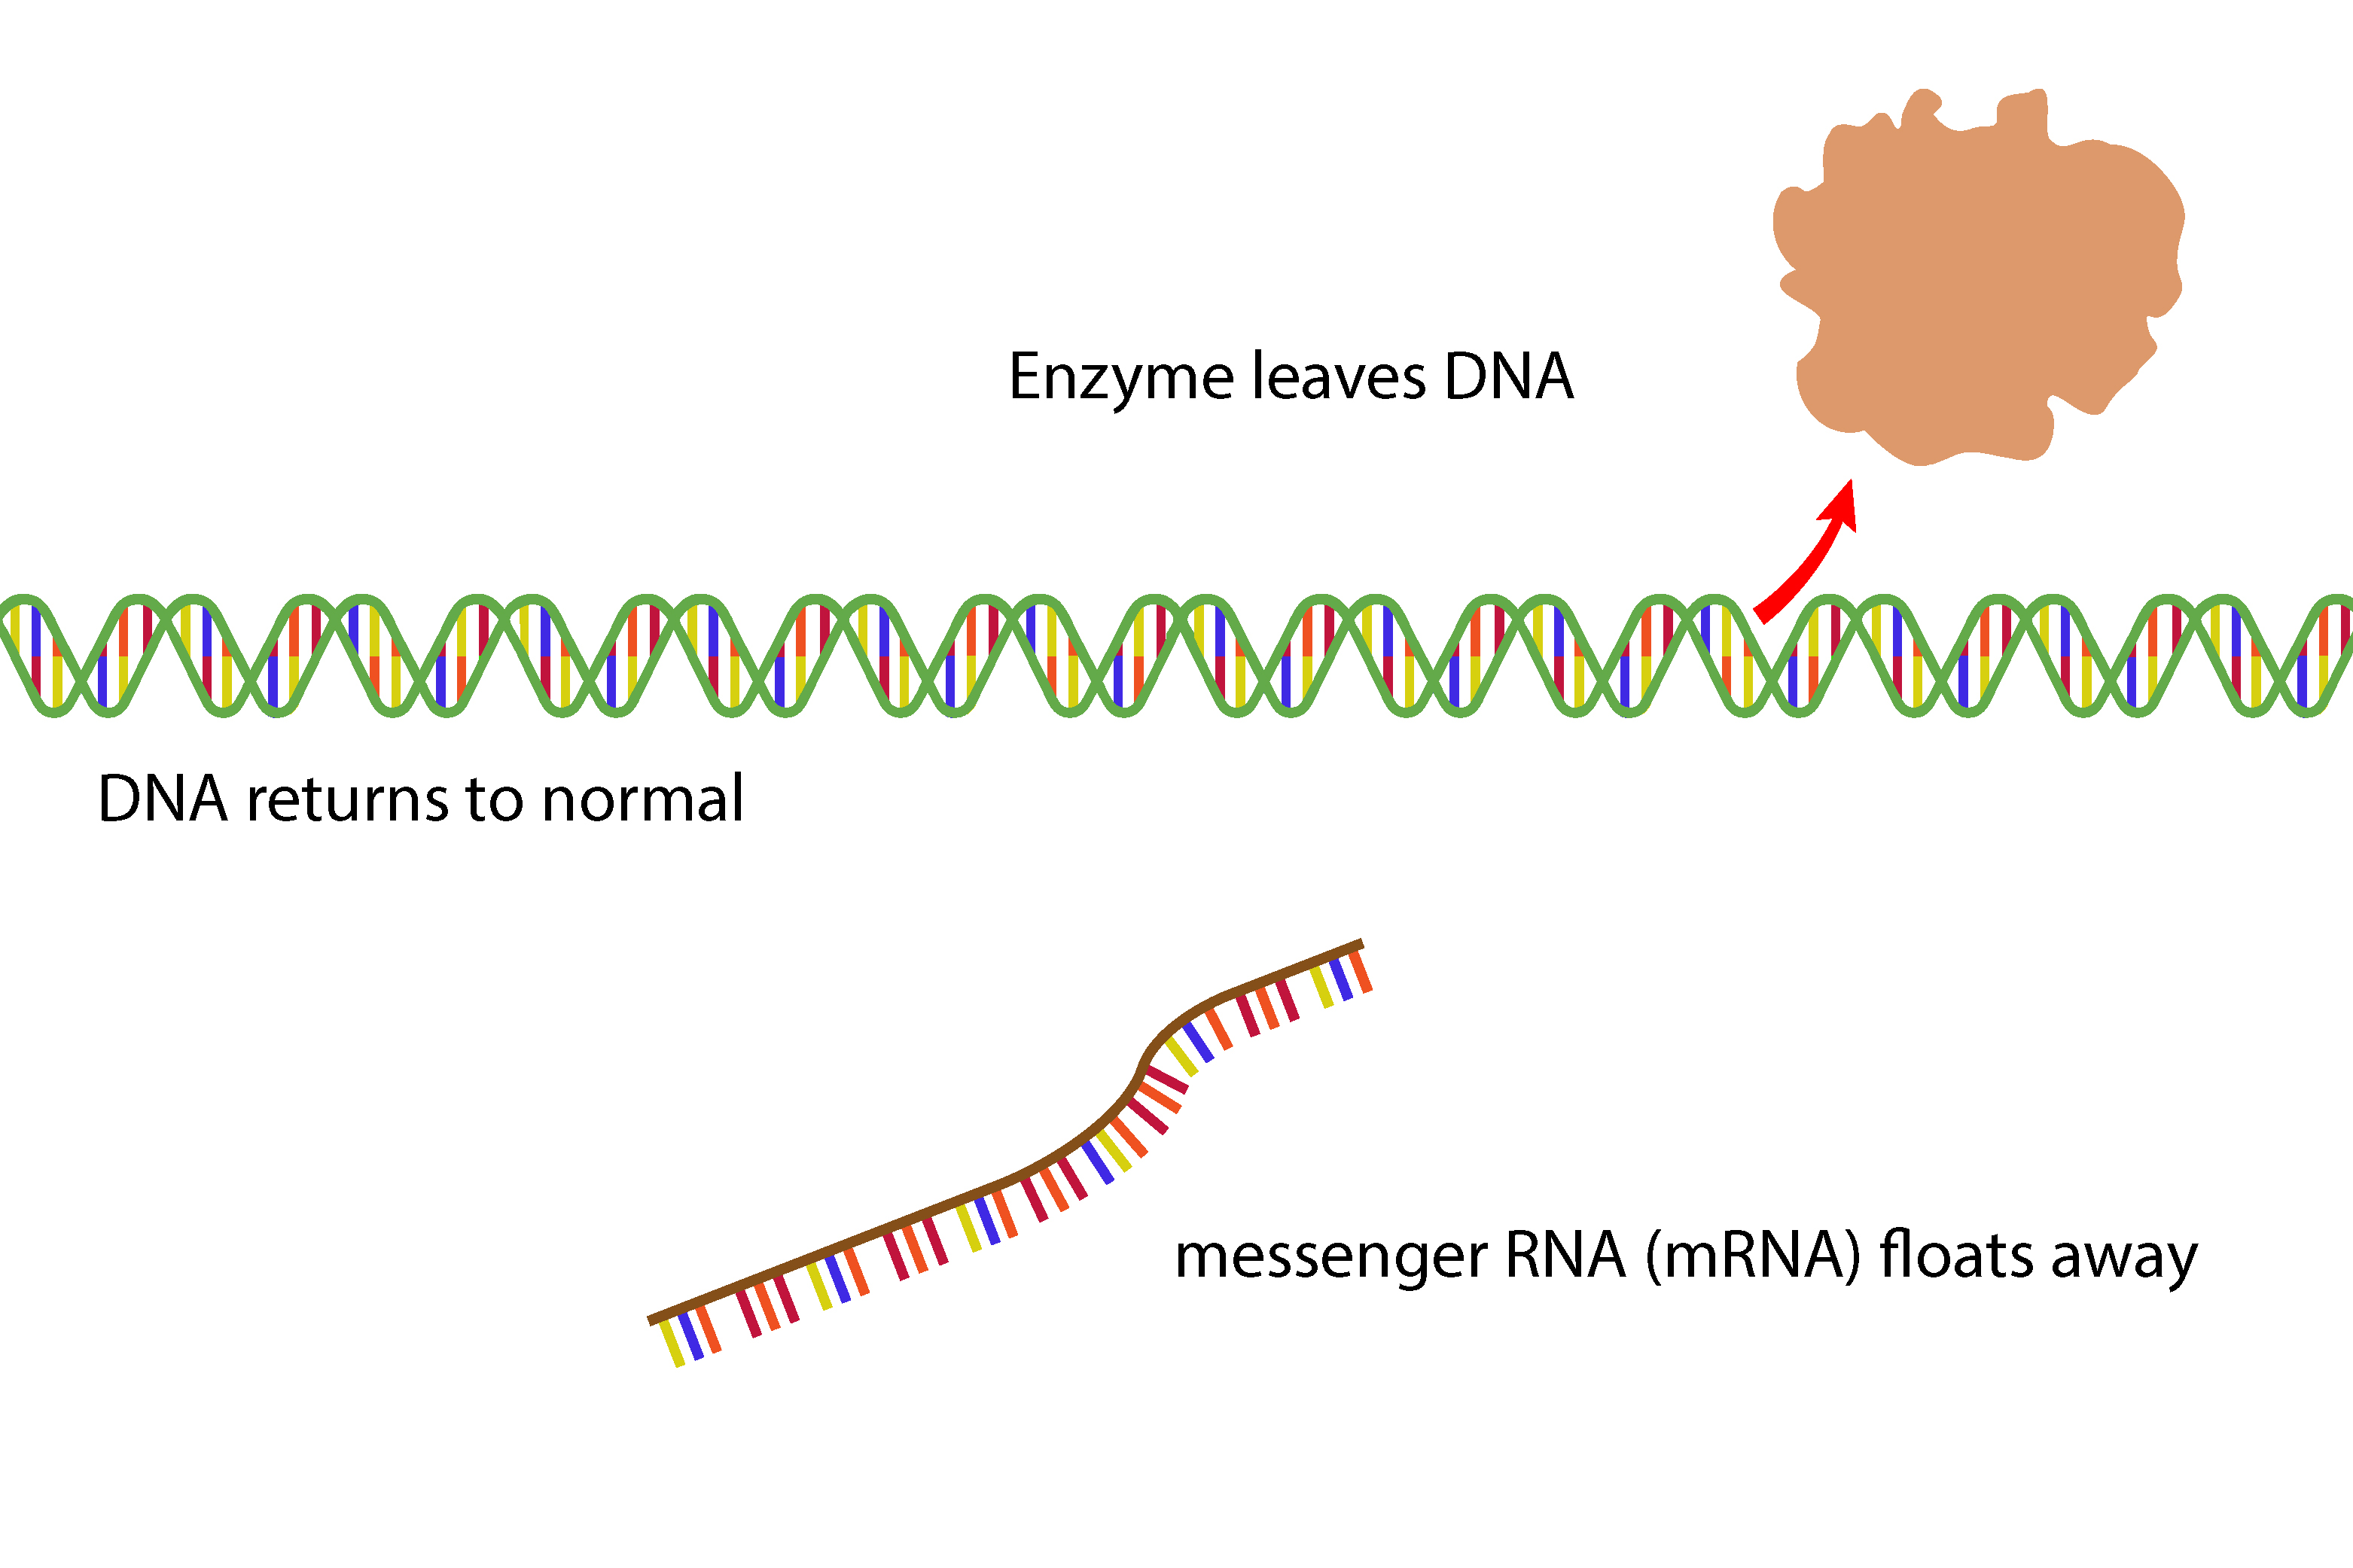 At the end of the gene the enzyme closes the DNA and messenger RNA leaves the DNA